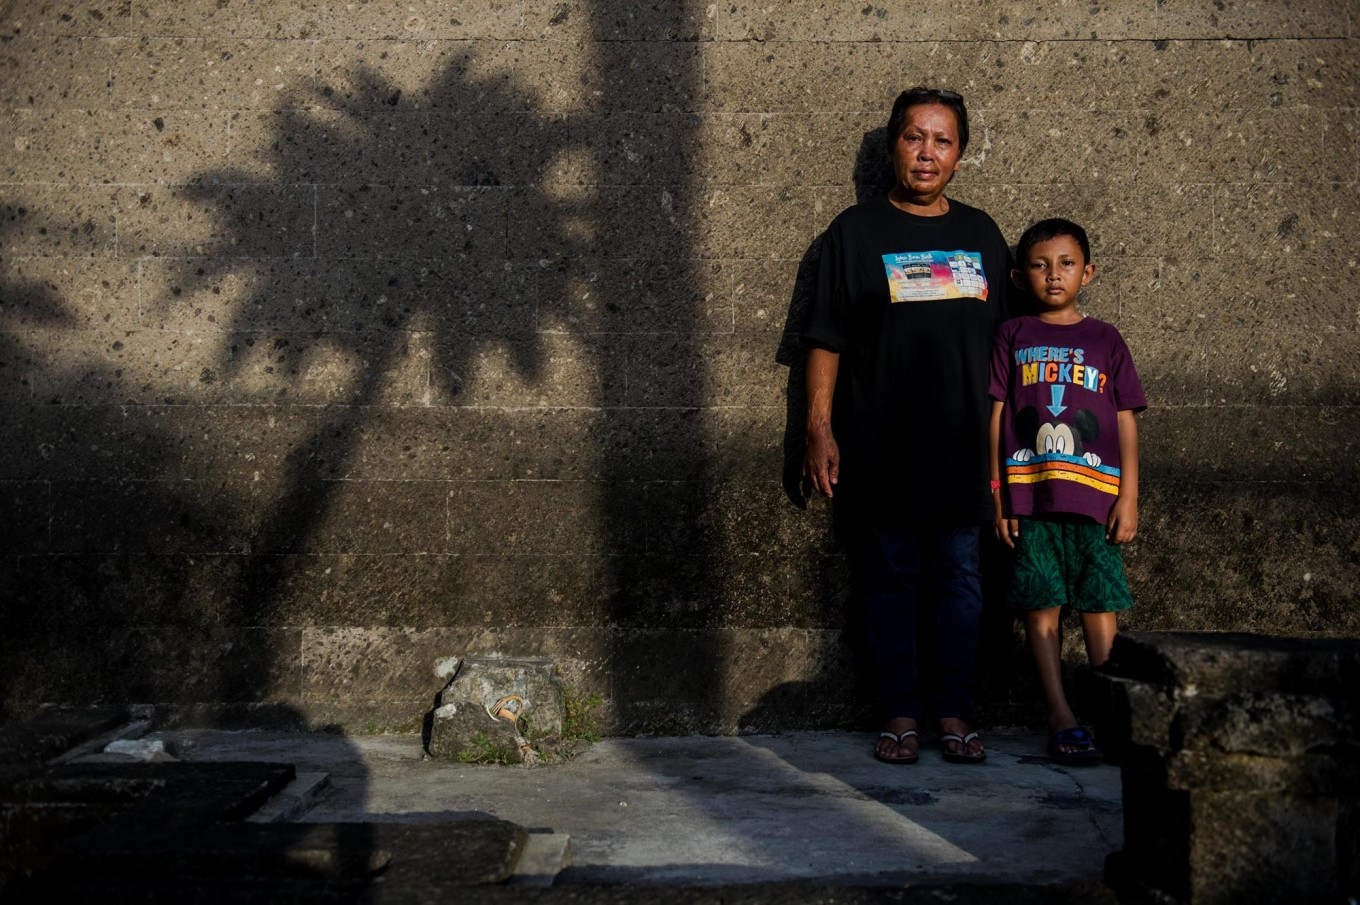 Chusnul and his son, Muafa, pose during the 15th anniversary of the Bali bombings at Ground Zero. JP/Anggara Mahendra